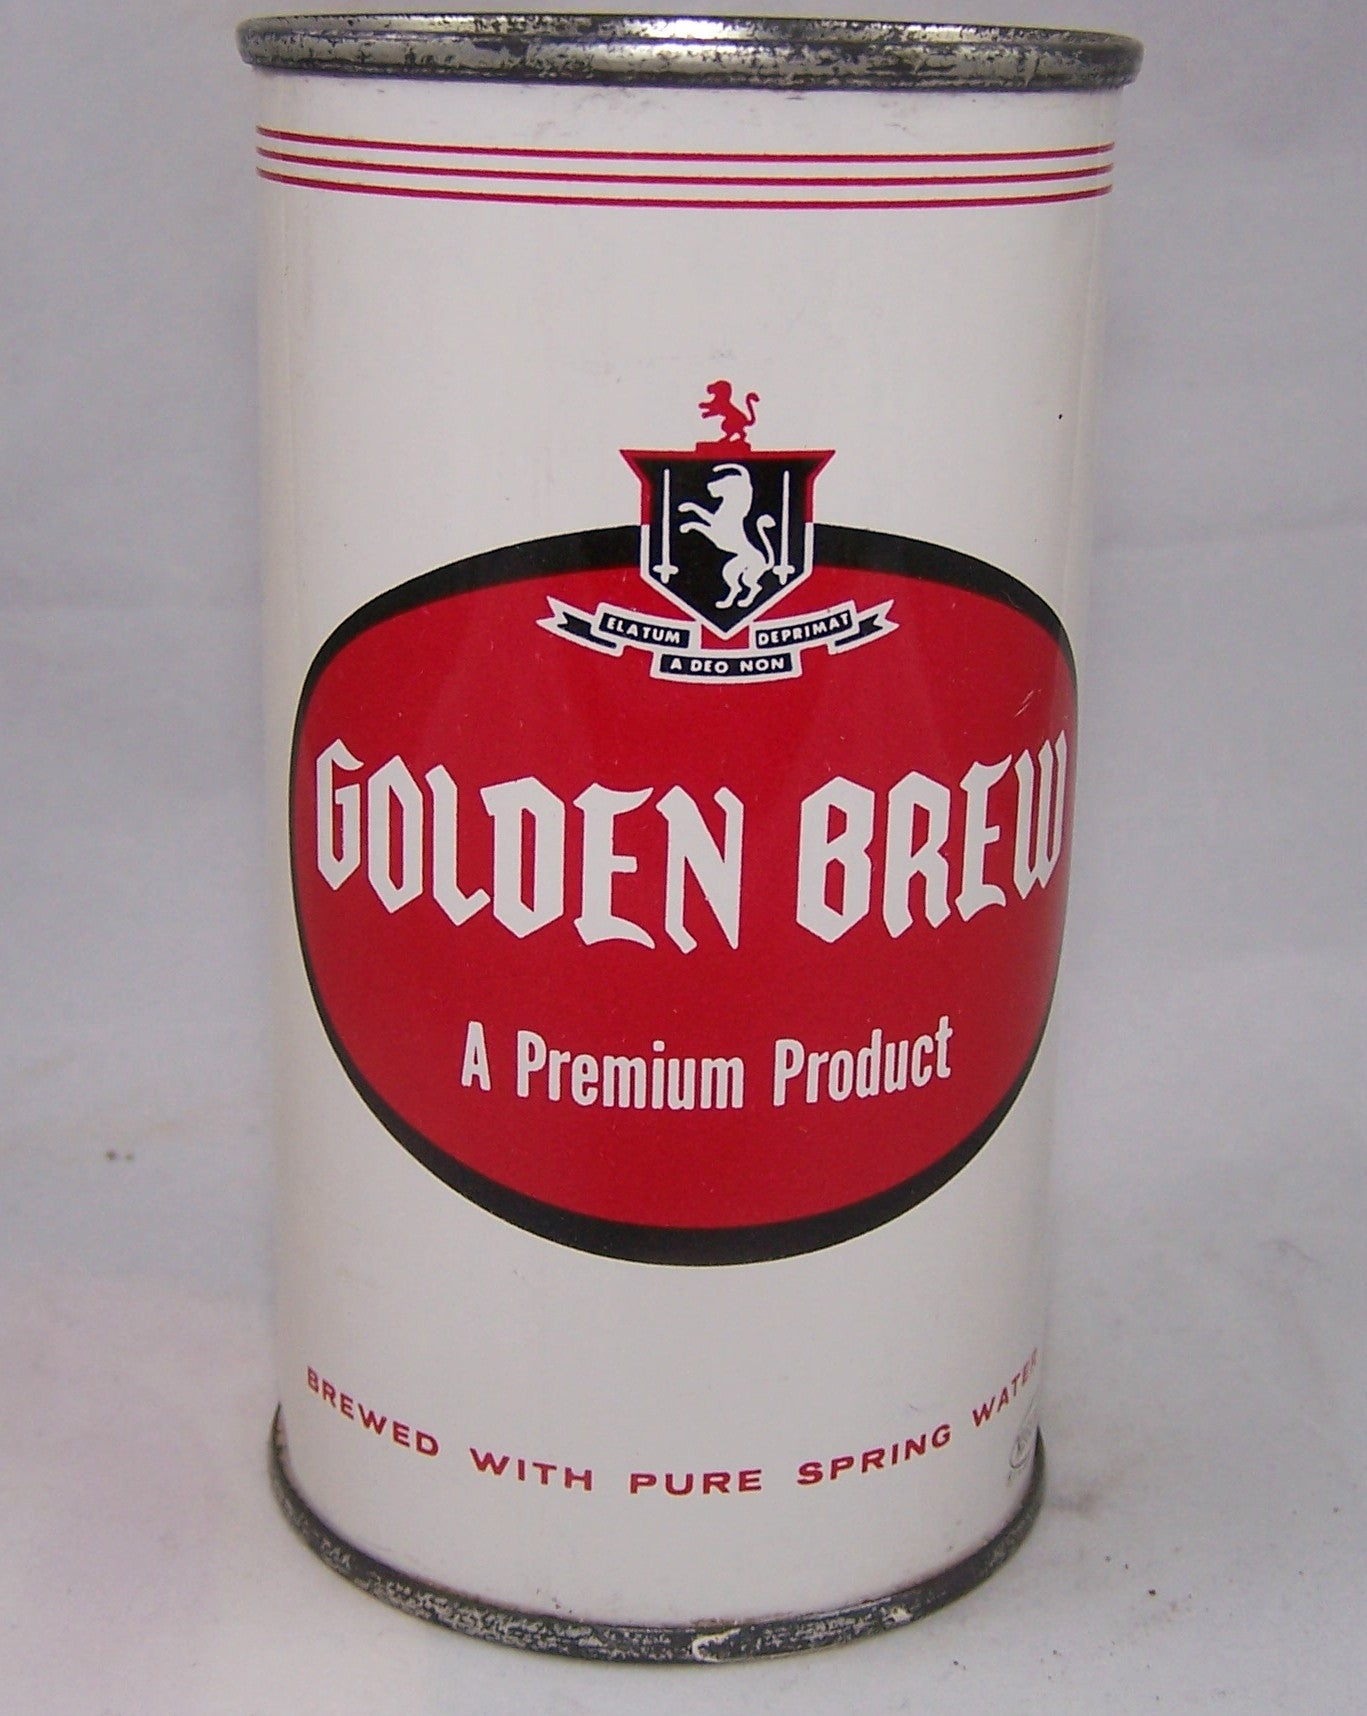 Golden Brew (A Premium Product) USBC 72-31, Grade 1/1+ Sold on 06/26/19